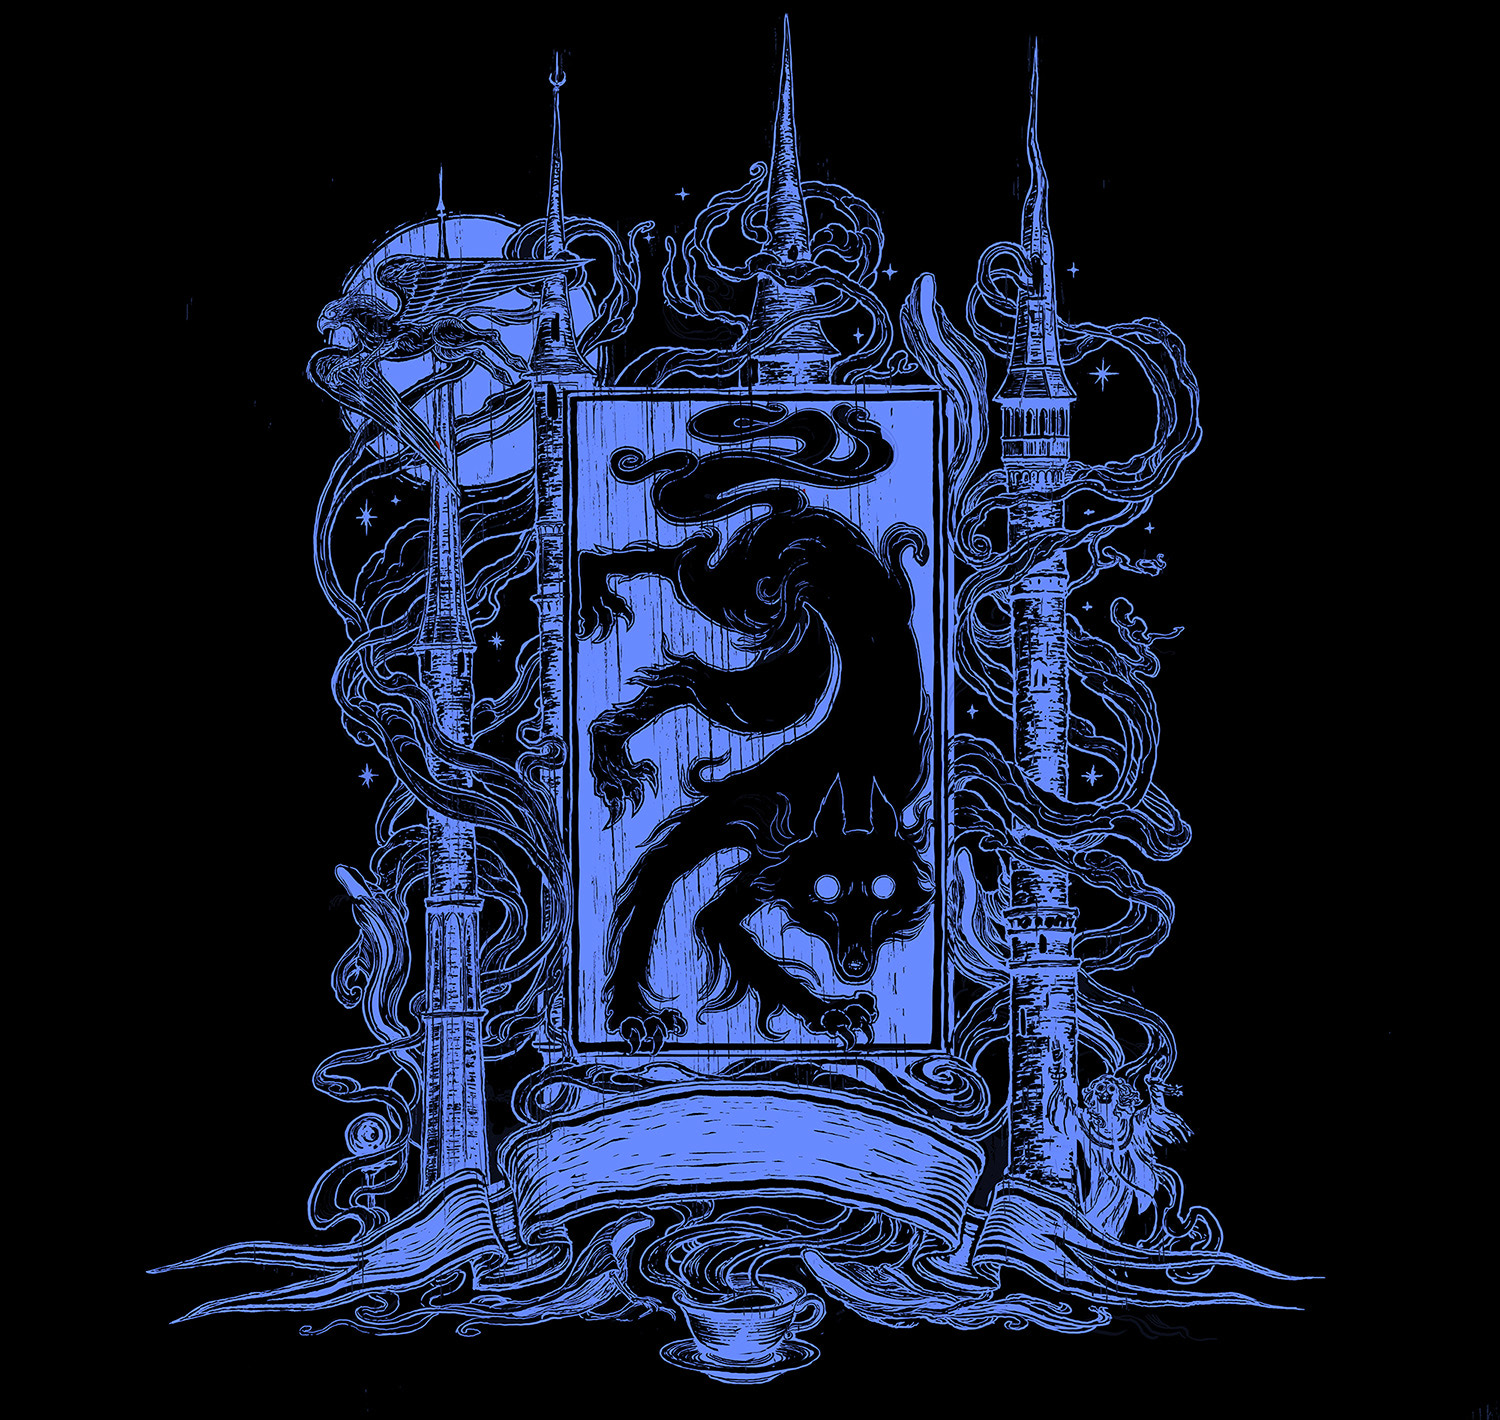 'Prisoner of Azkaban' house edition crest (Ravenclaw)